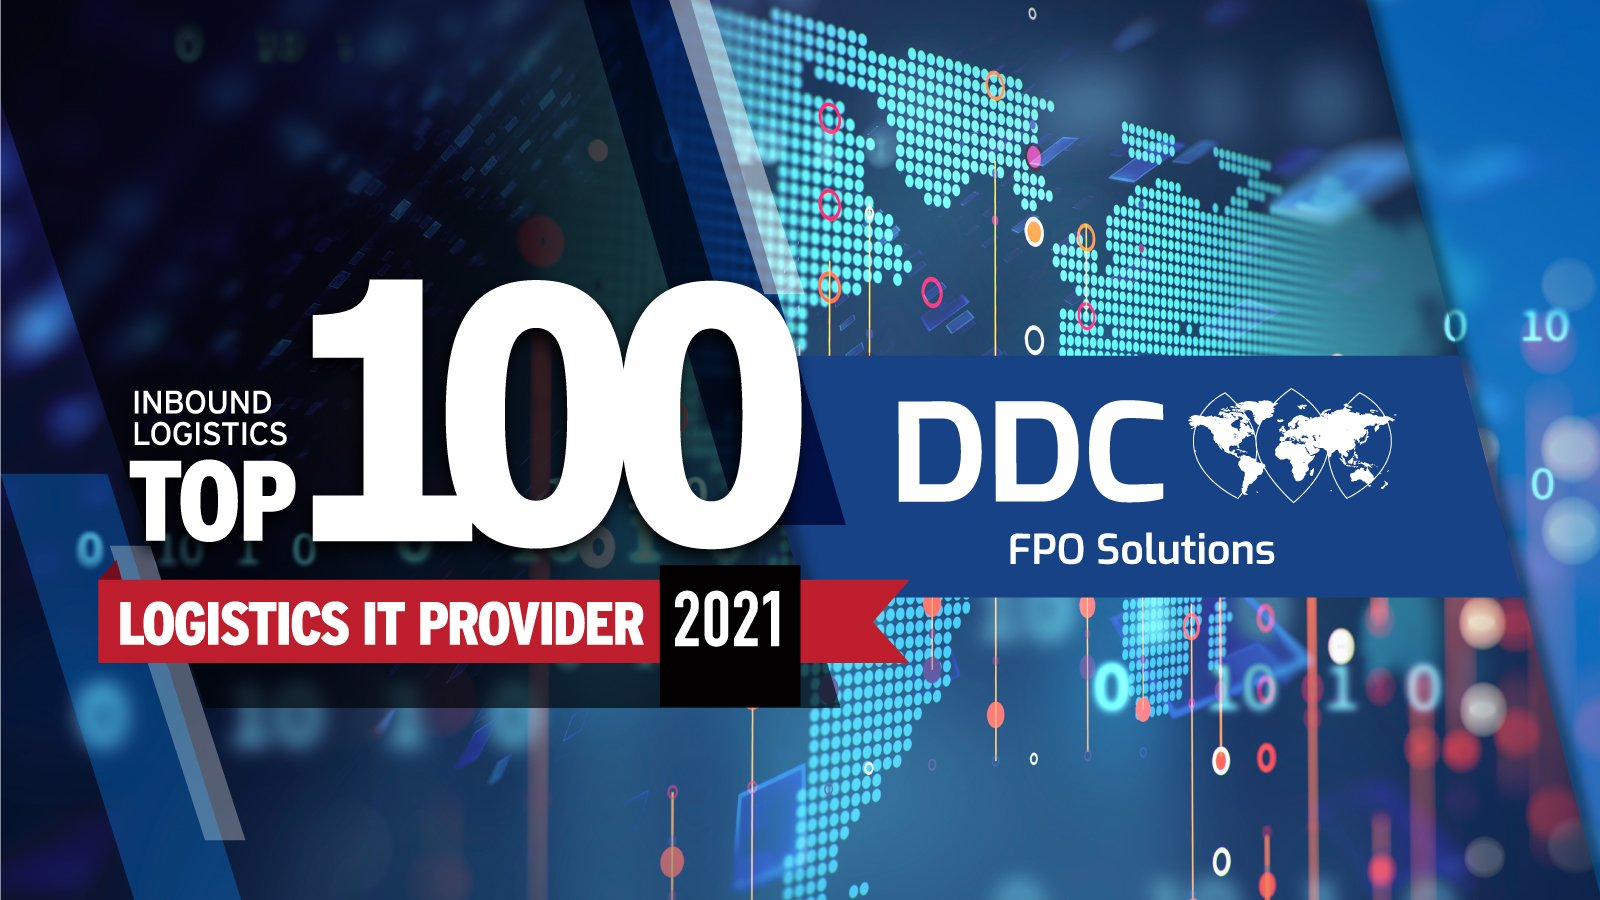 DDC FPO Is Named to Inbound Logistics' Top 100 IT Providers for Transportation